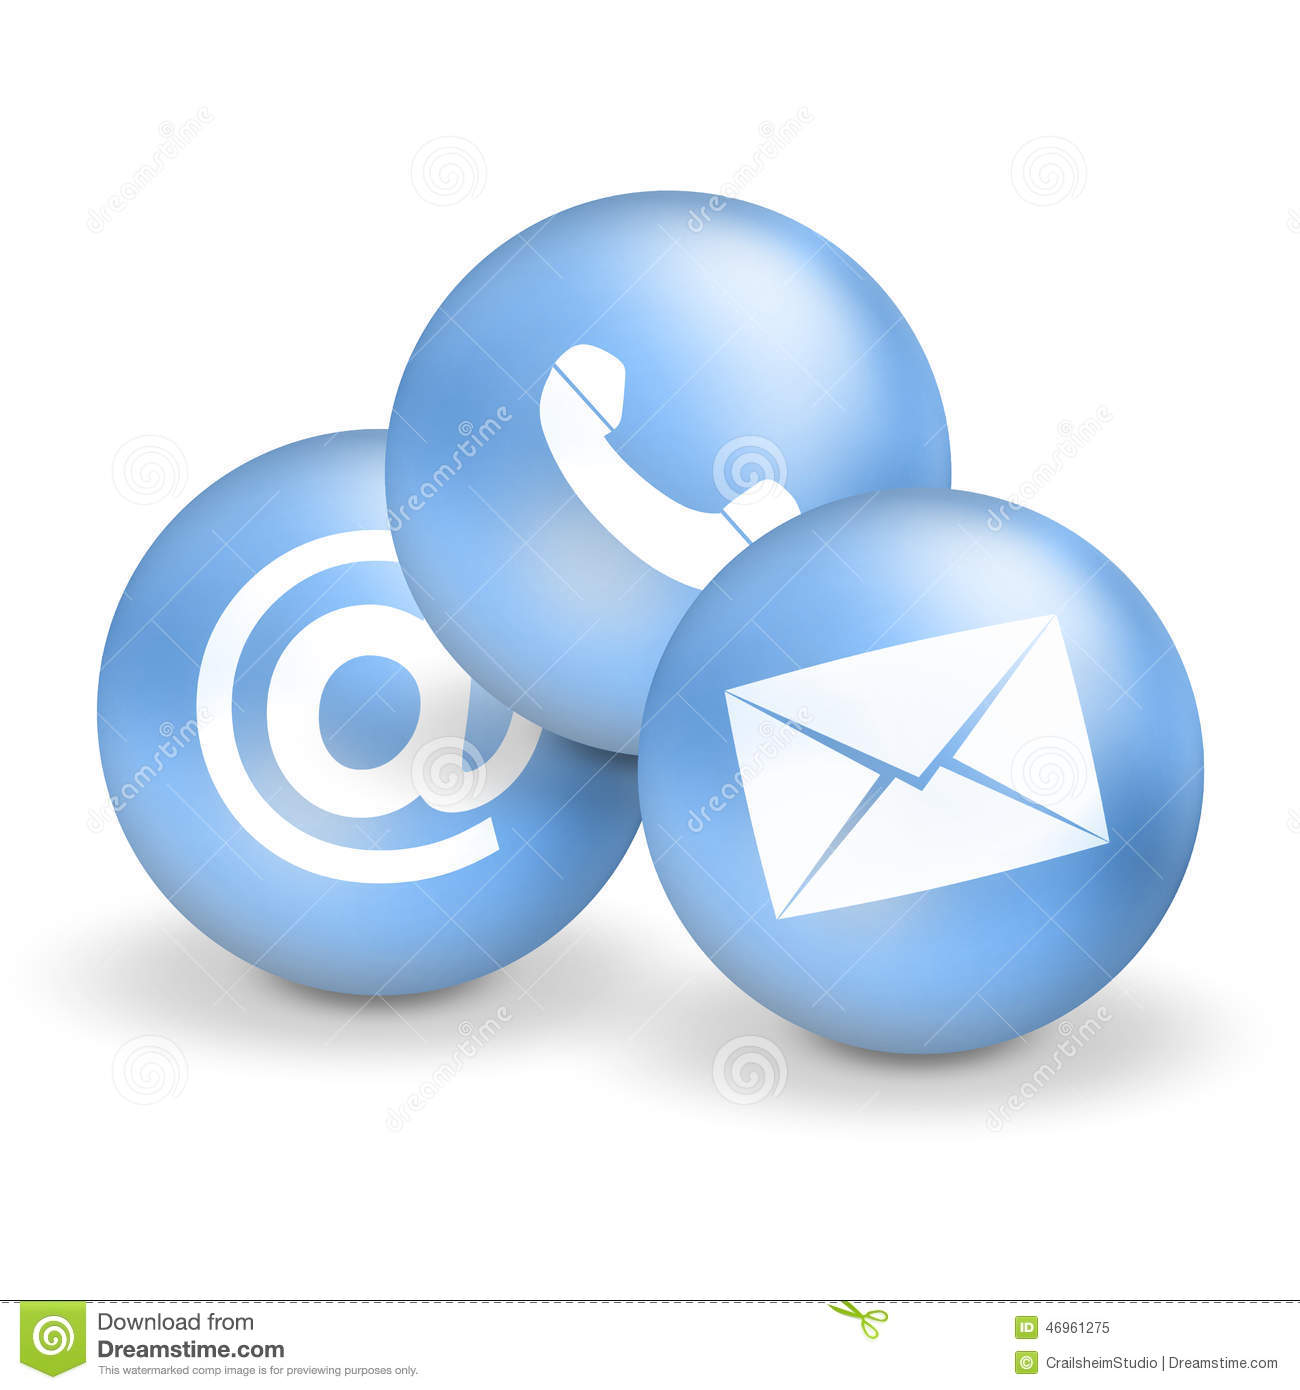 Contact Us Icons Stock Illustration - Image: 46961275